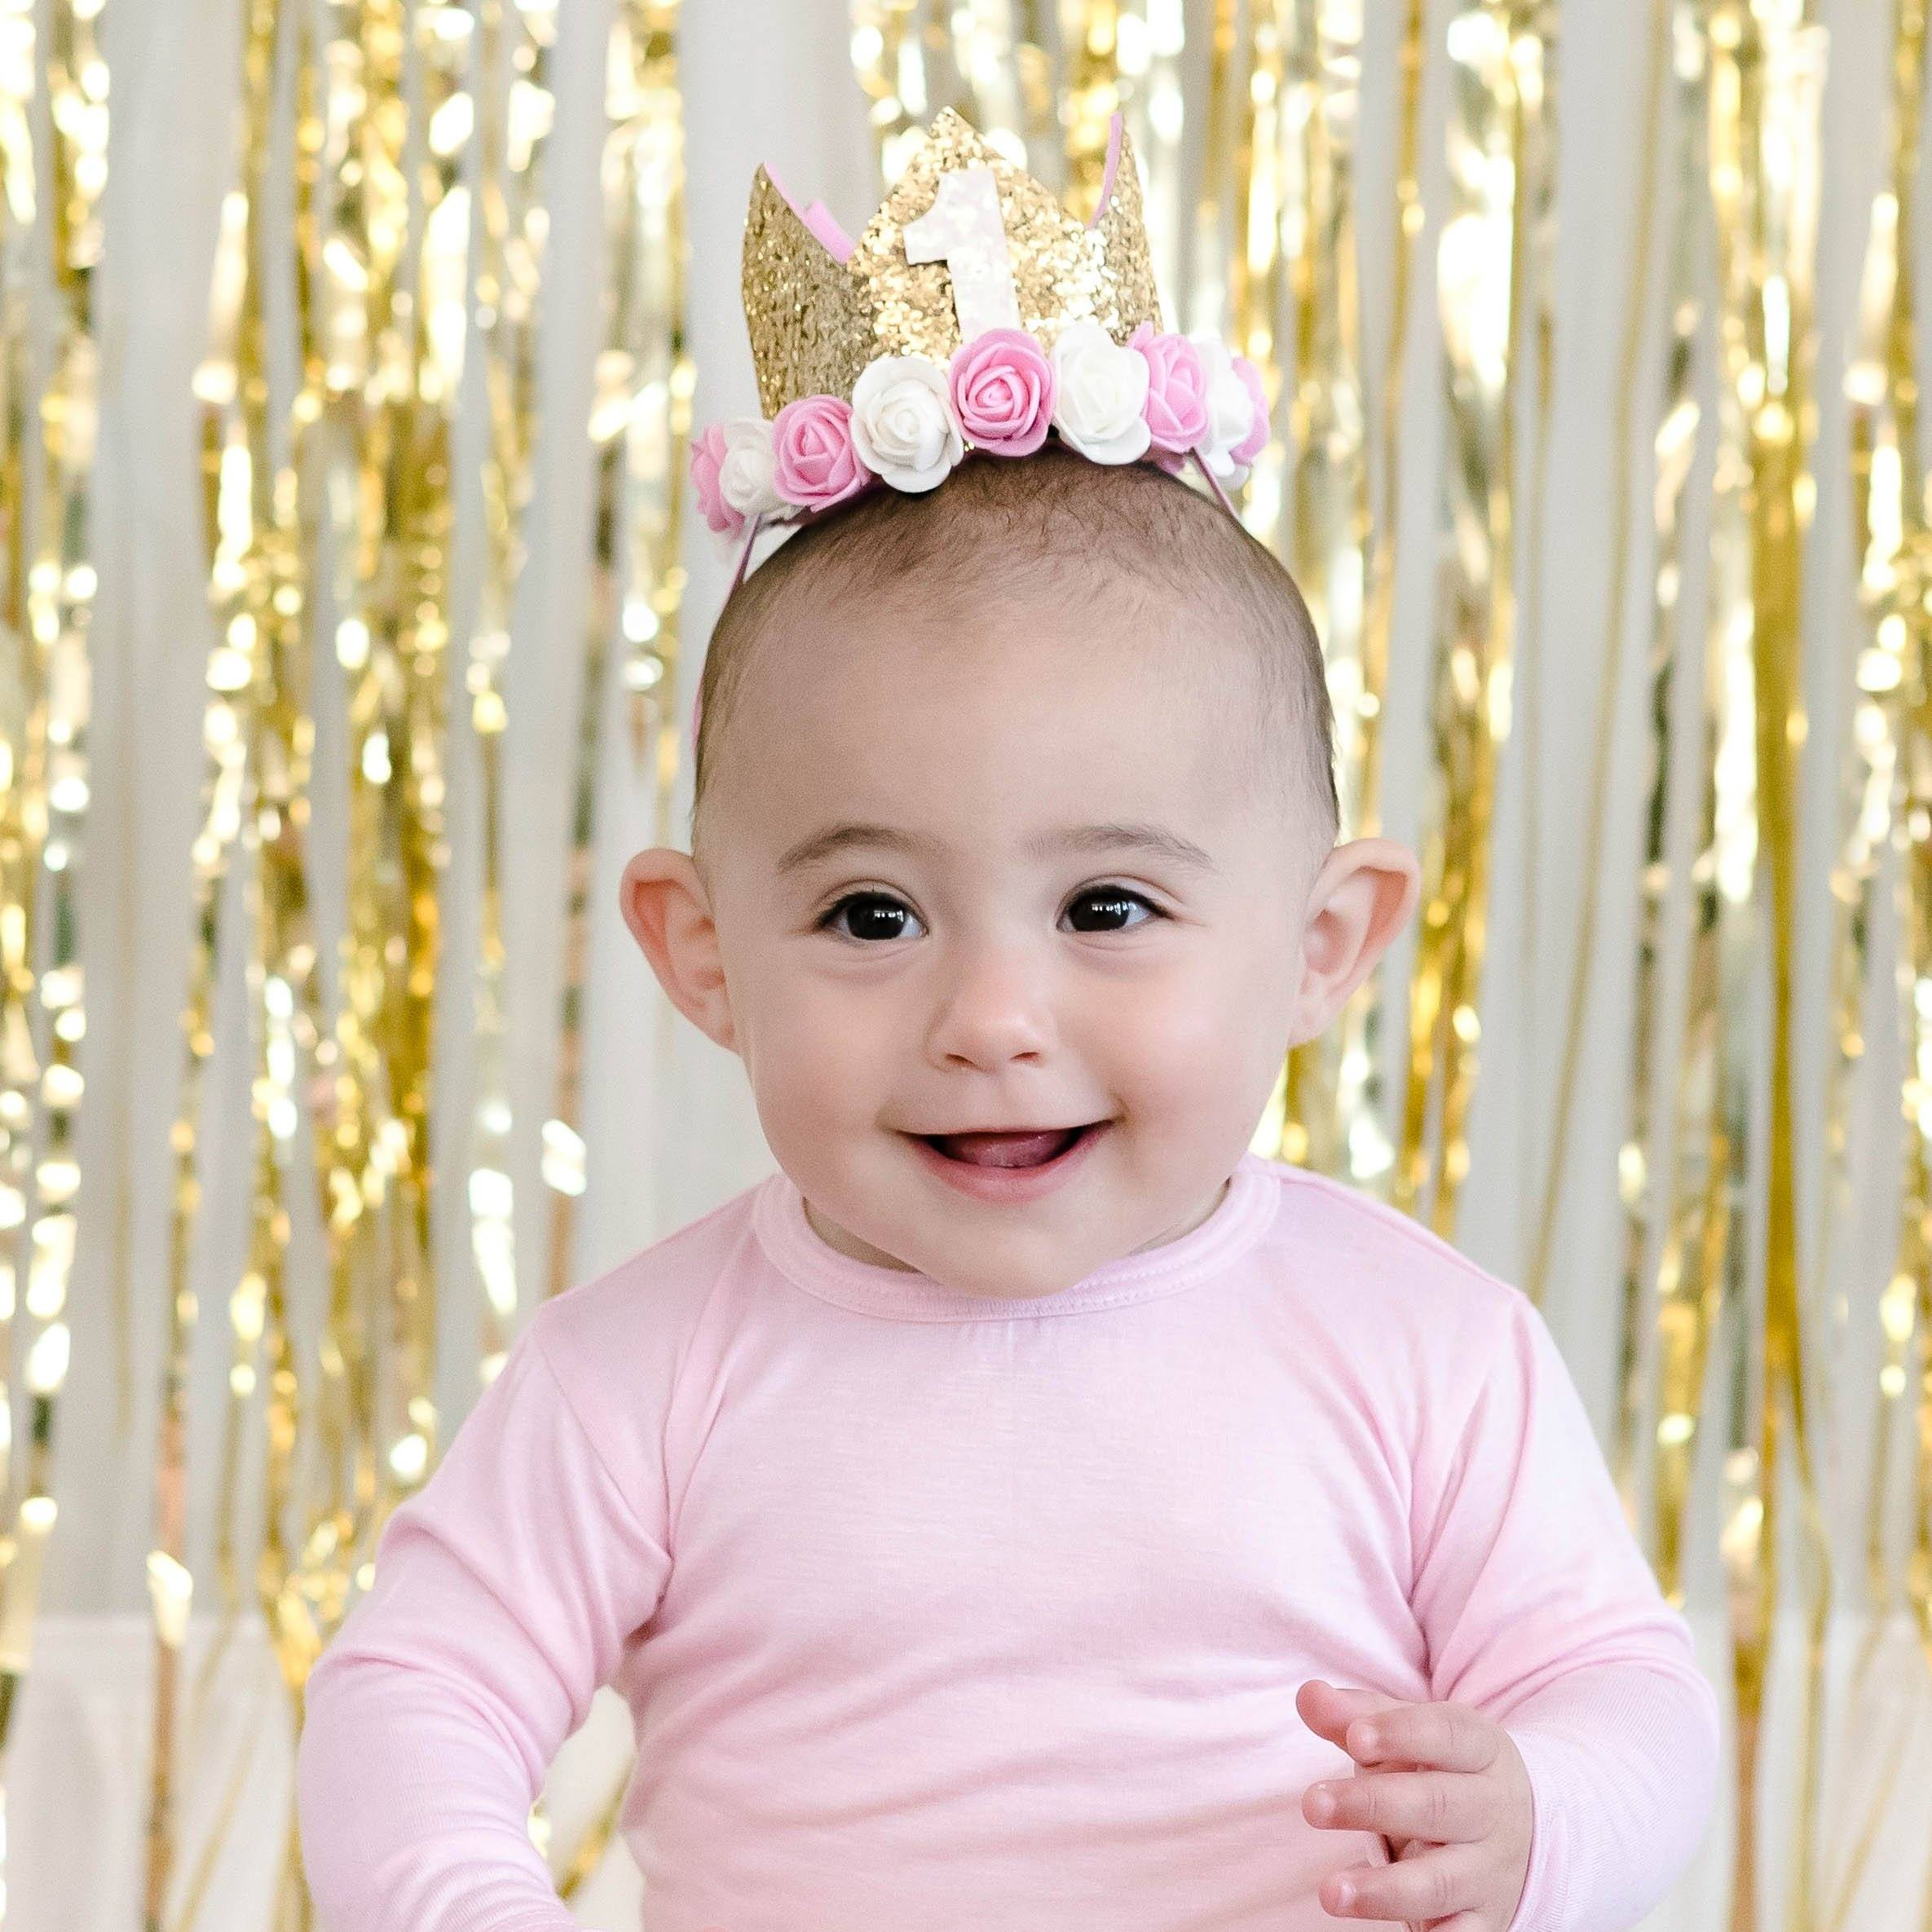 Birthday Flower Crown - Gold Glitter - Project Nursery